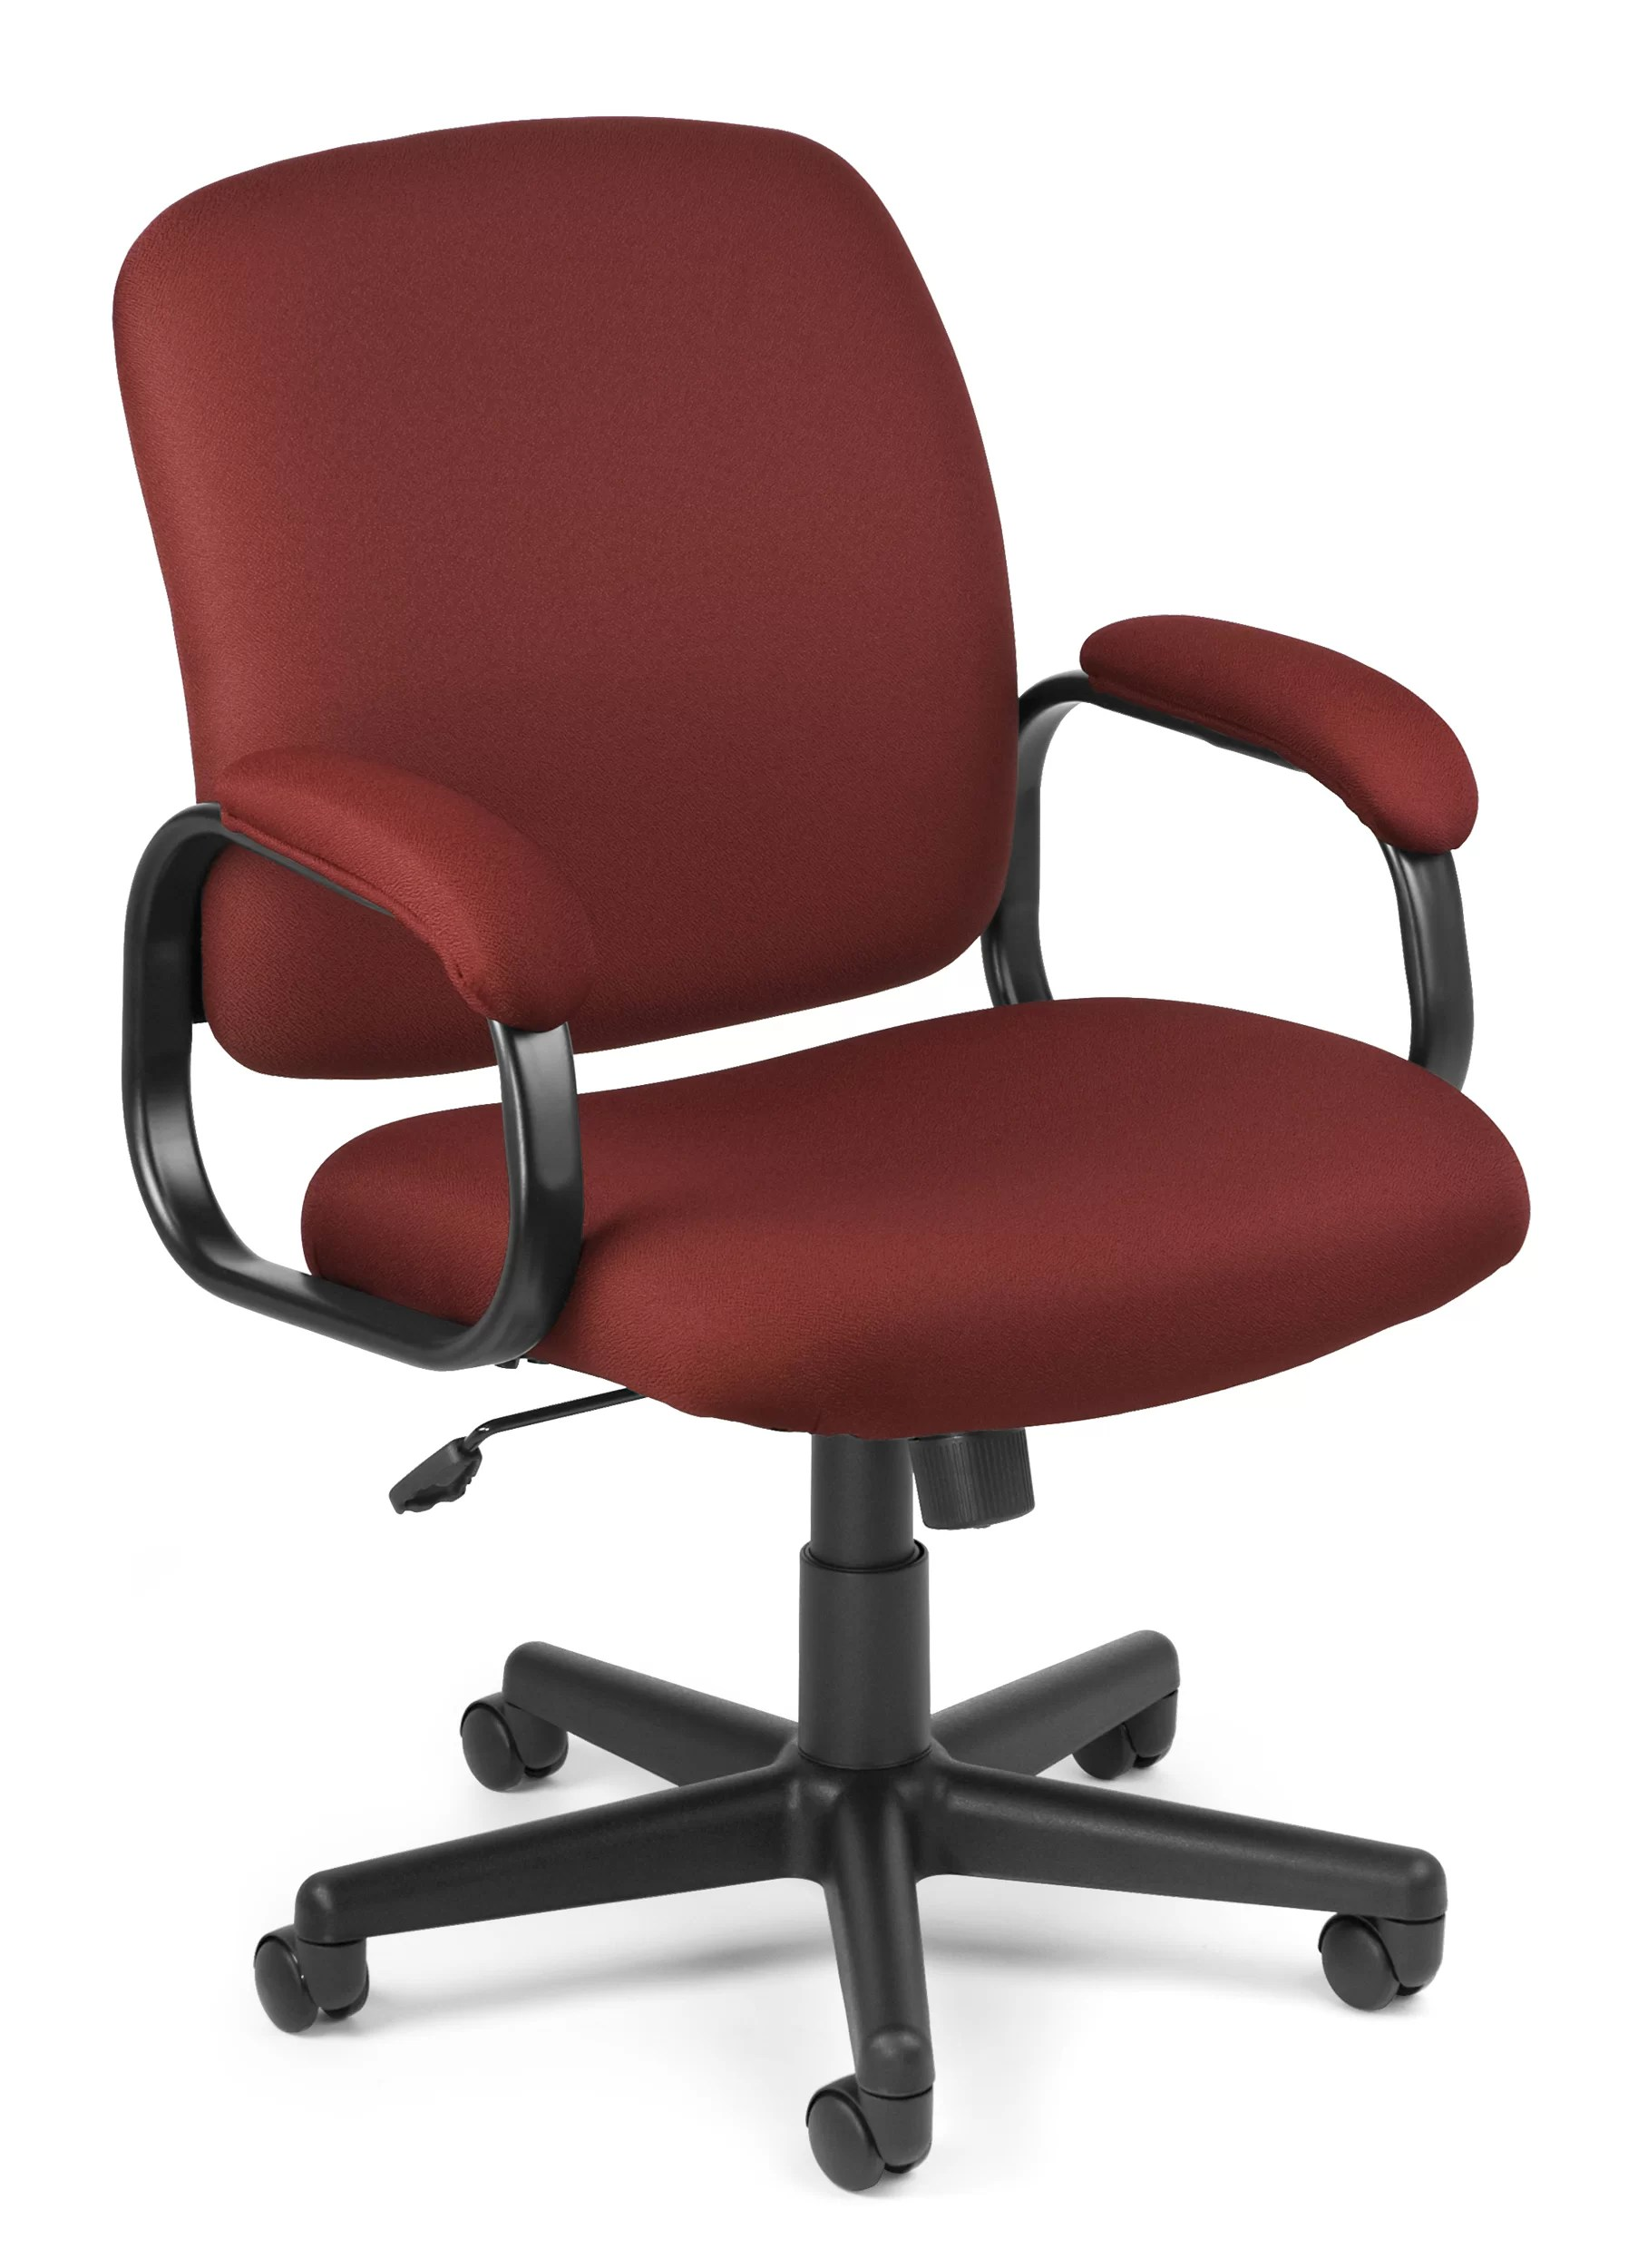 desk chair next graphic design ofm executive series confrence mid back